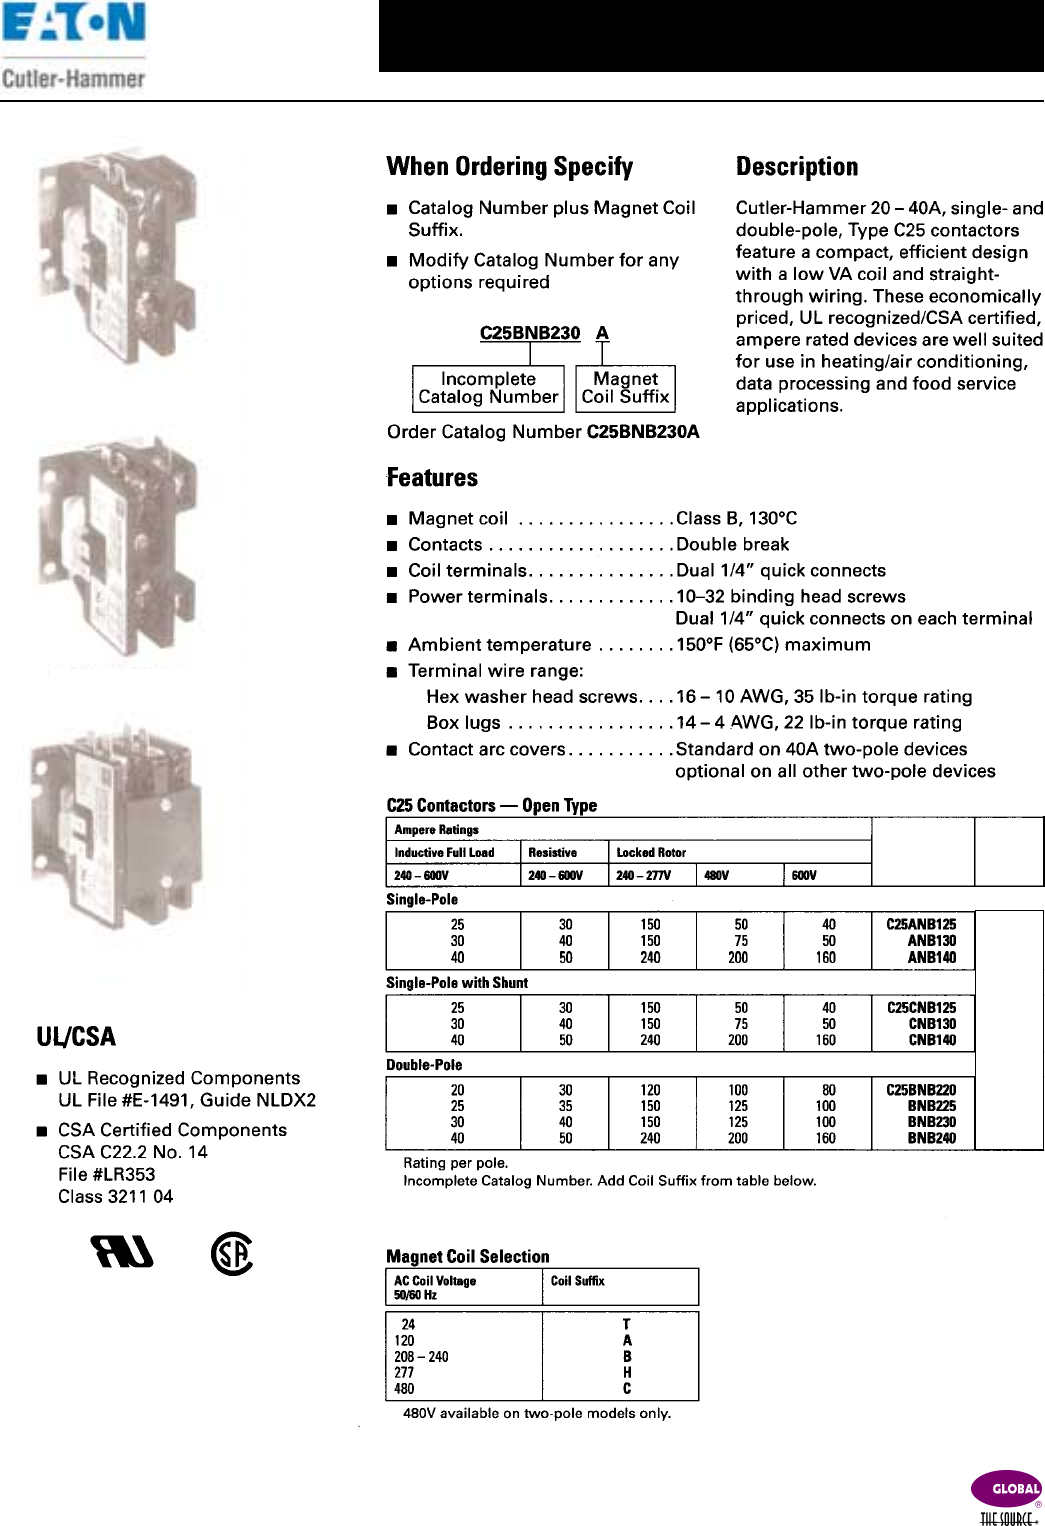 eaton c25bnb230a wiring diagram Download-Eaton C25bnb230a Wiring Diagram New Cat Master Bu Catalog 15-h